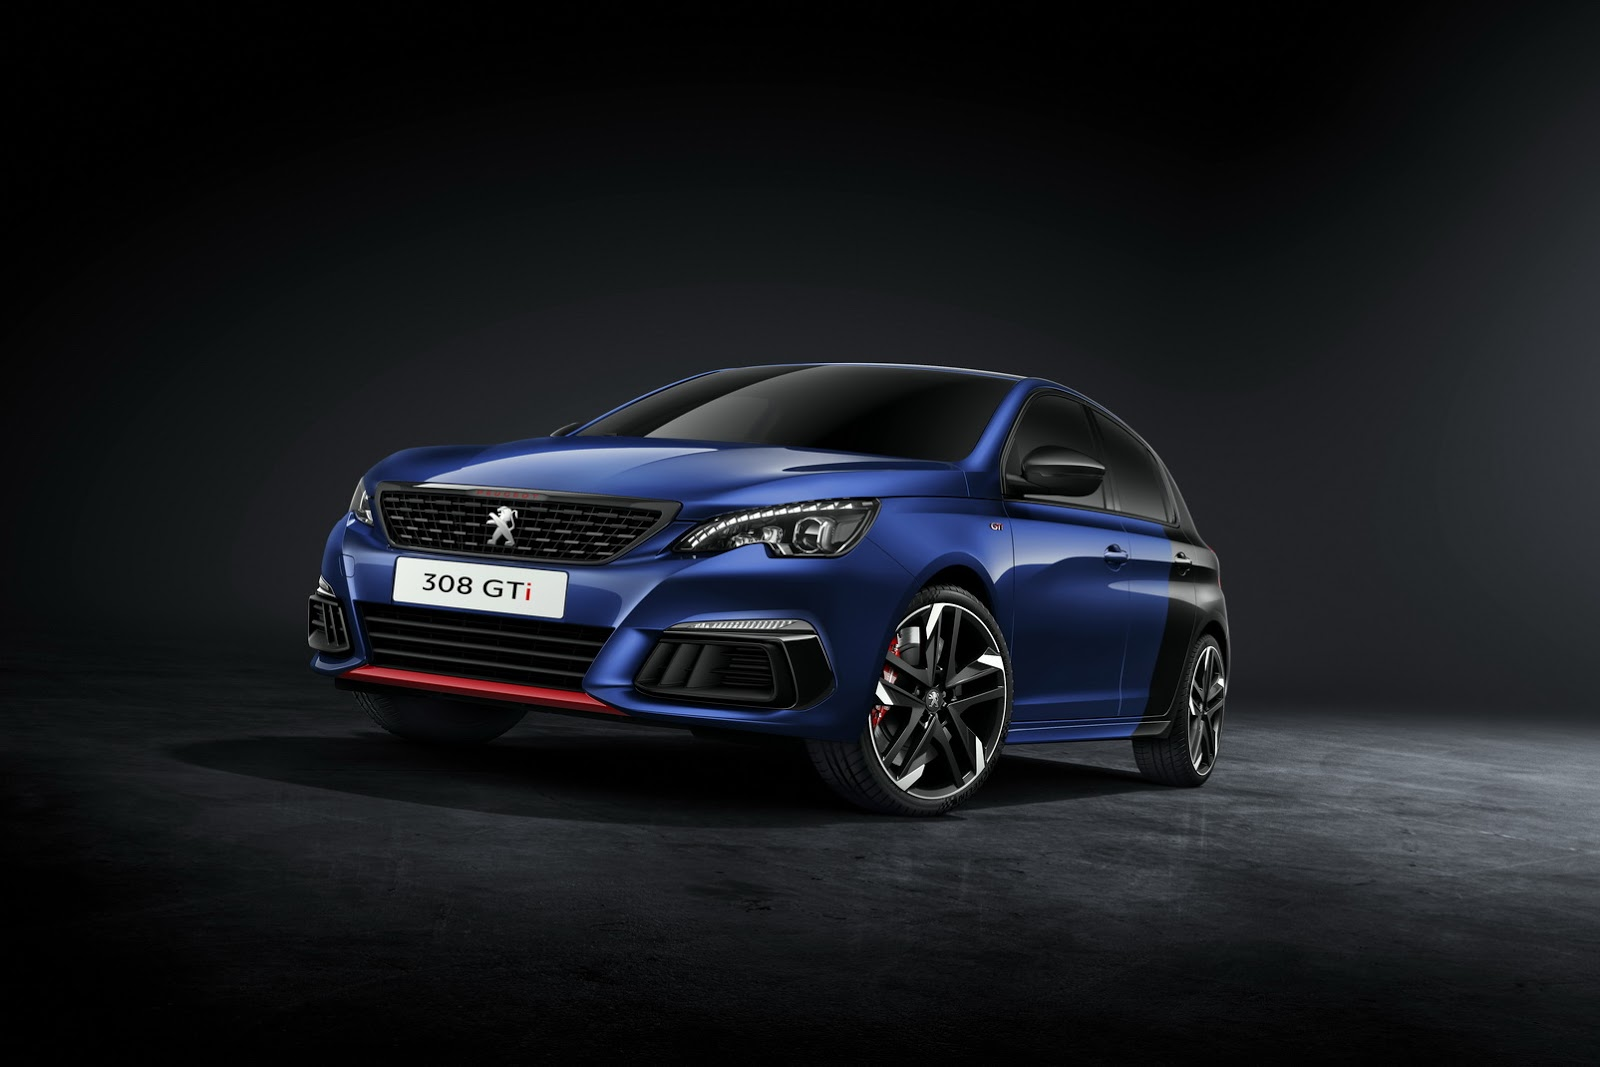 2018 peugeot 308 gti finally shows its facelift in detail autoevolution. Black Bedroom Furniture Sets. Home Design Ideas